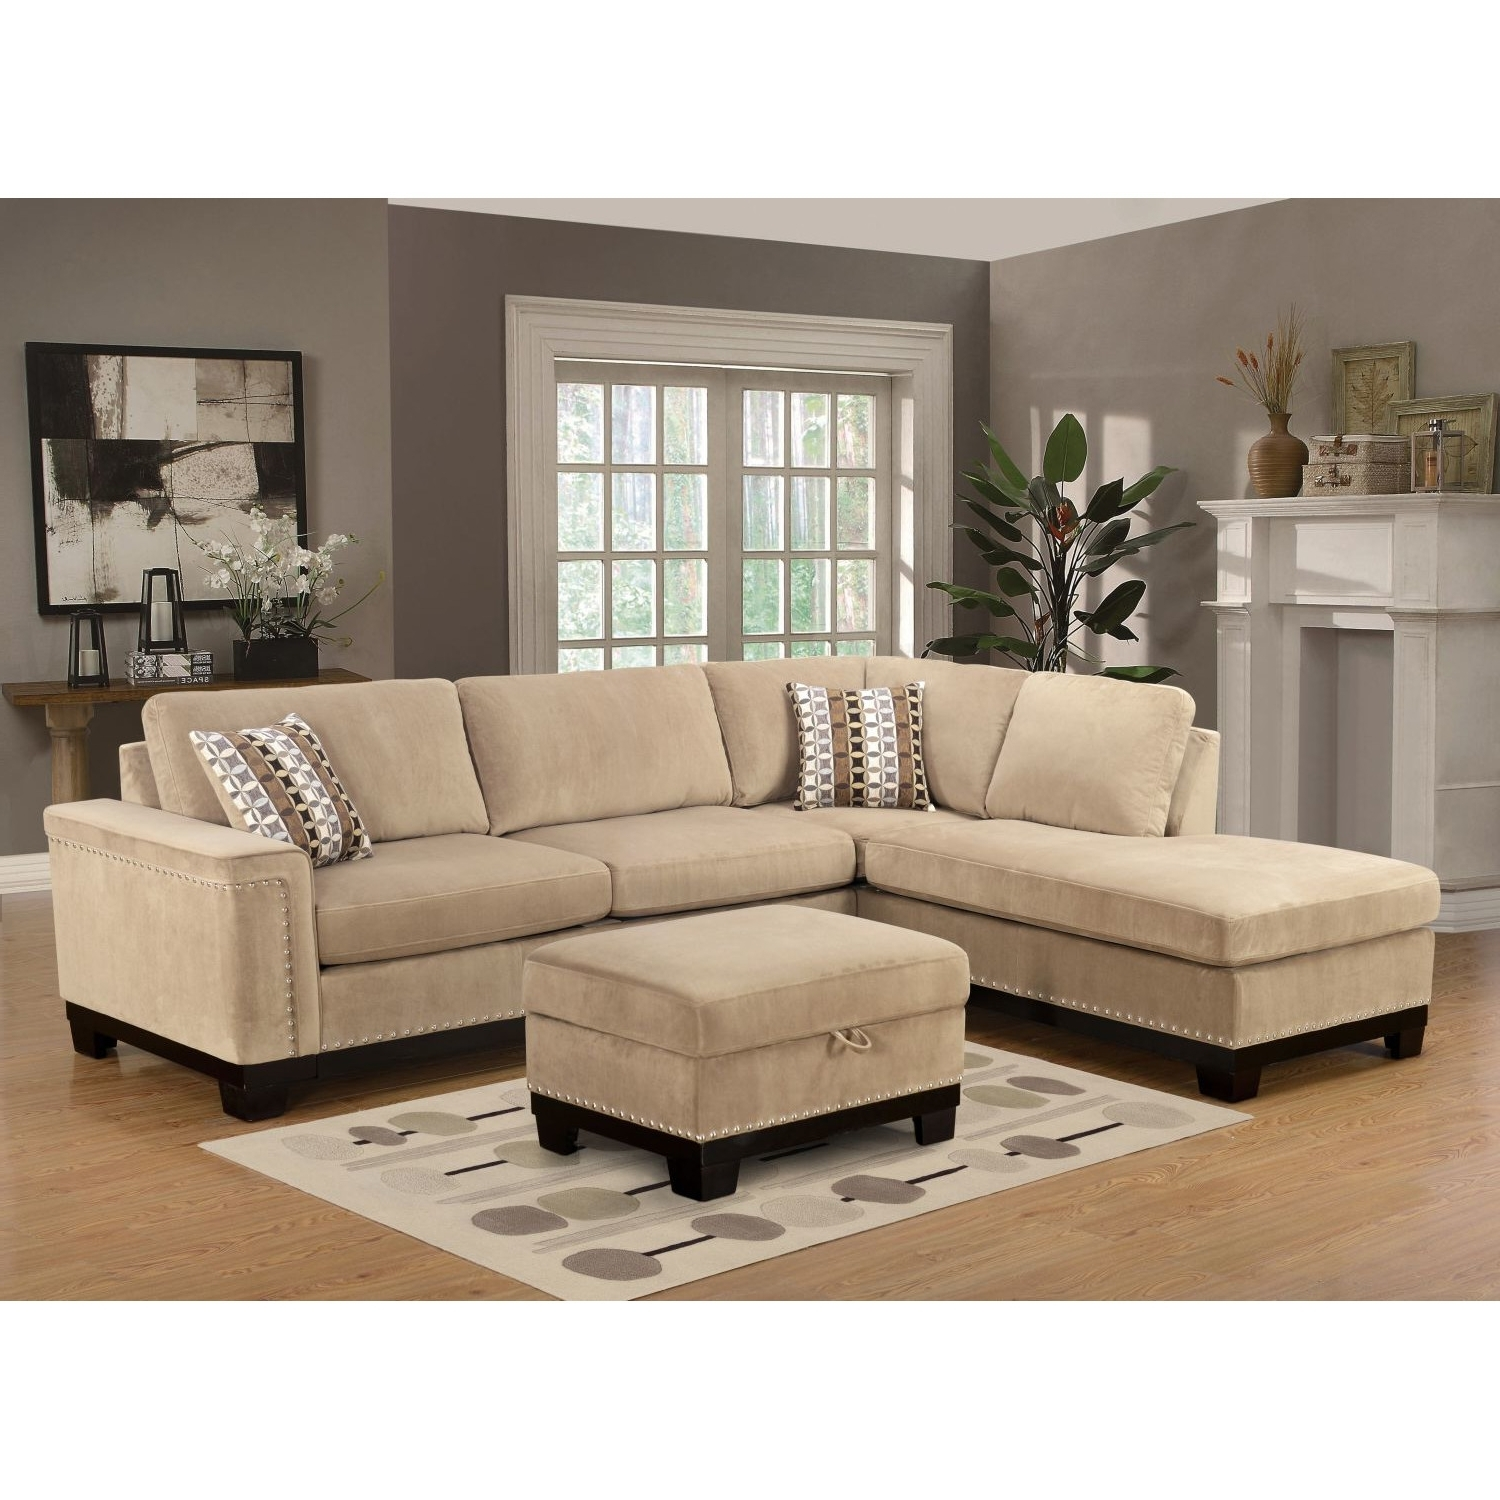 Popular Comfy Sectional Sofas With Regard To Couch (View 11 of 15)